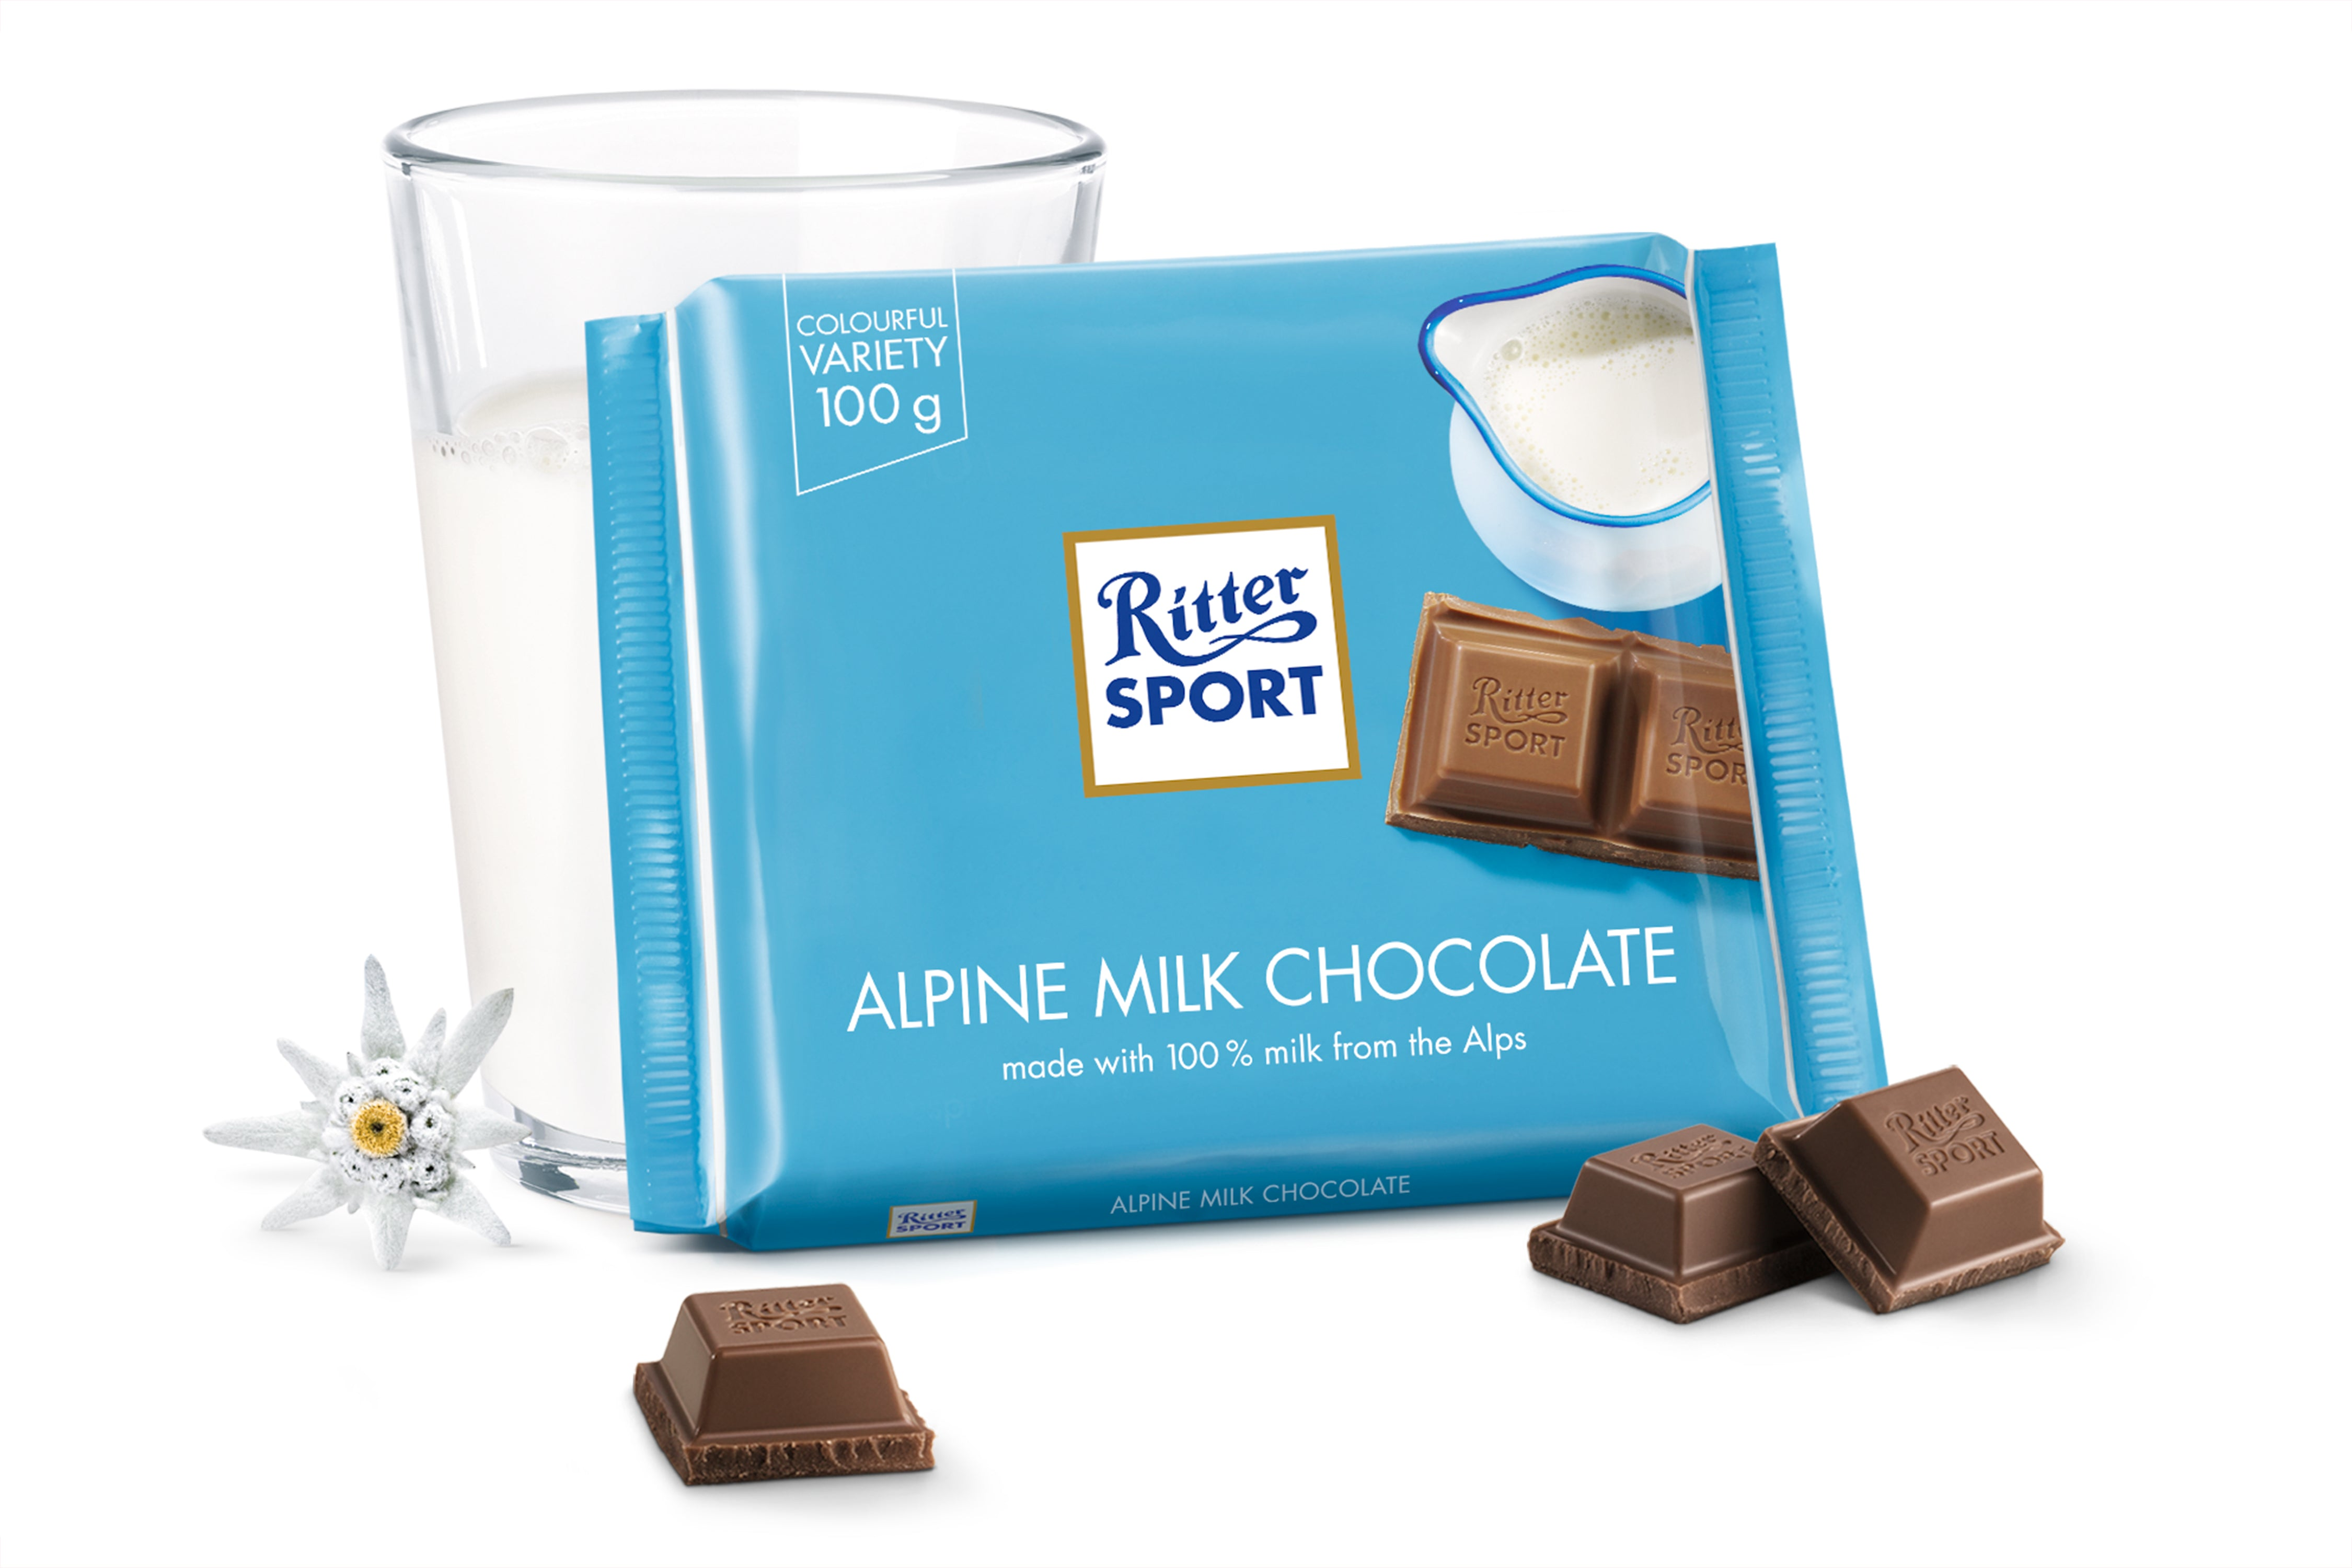 Ritter Alpine Milk Chocolate 100g